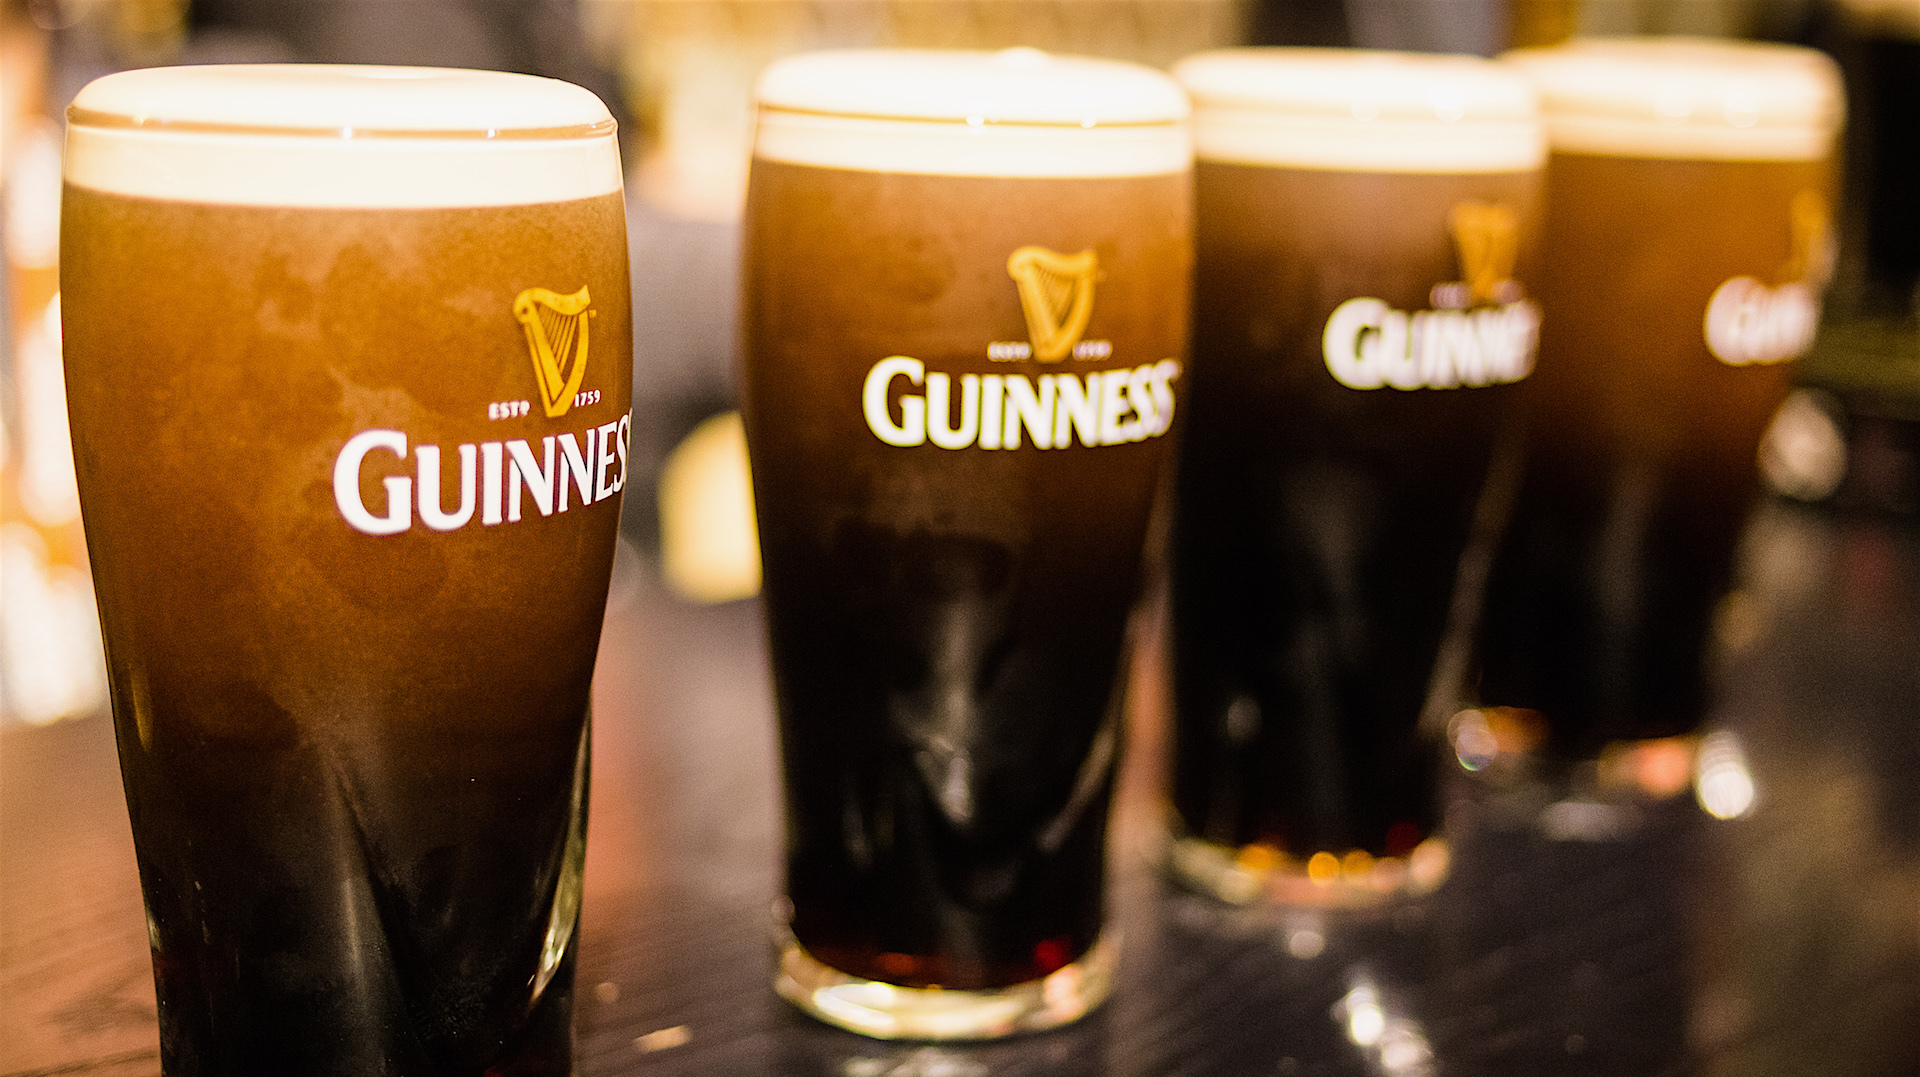 guinness-beer-will-soon-be-vegan.jpe